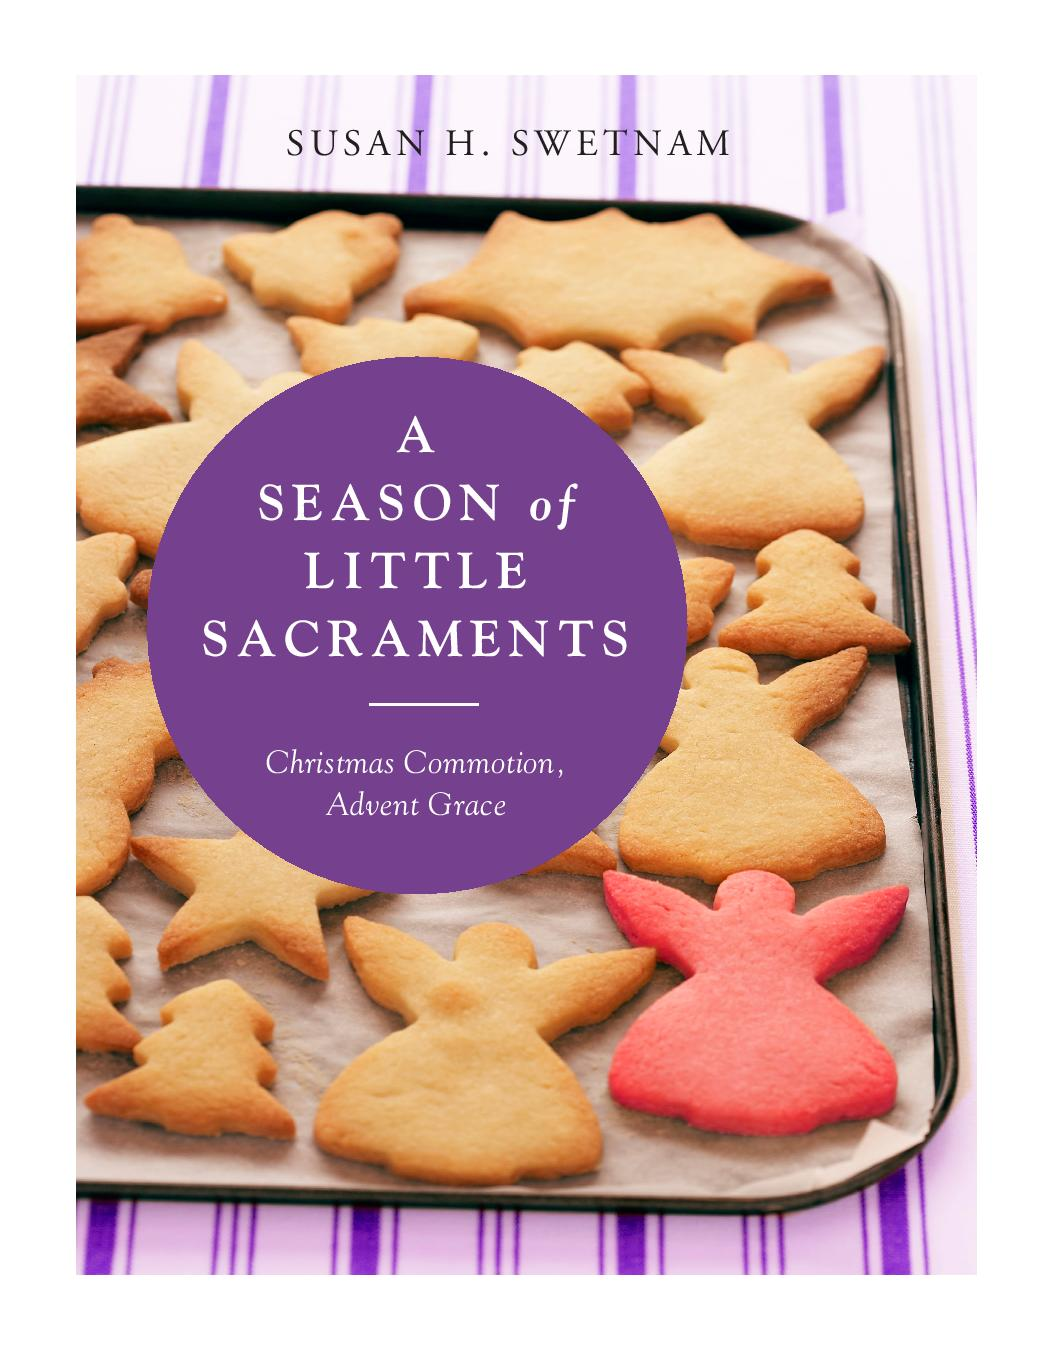 Idaho State University emerita professor Susan Swetnam publishes eighth book about Christmas traditions